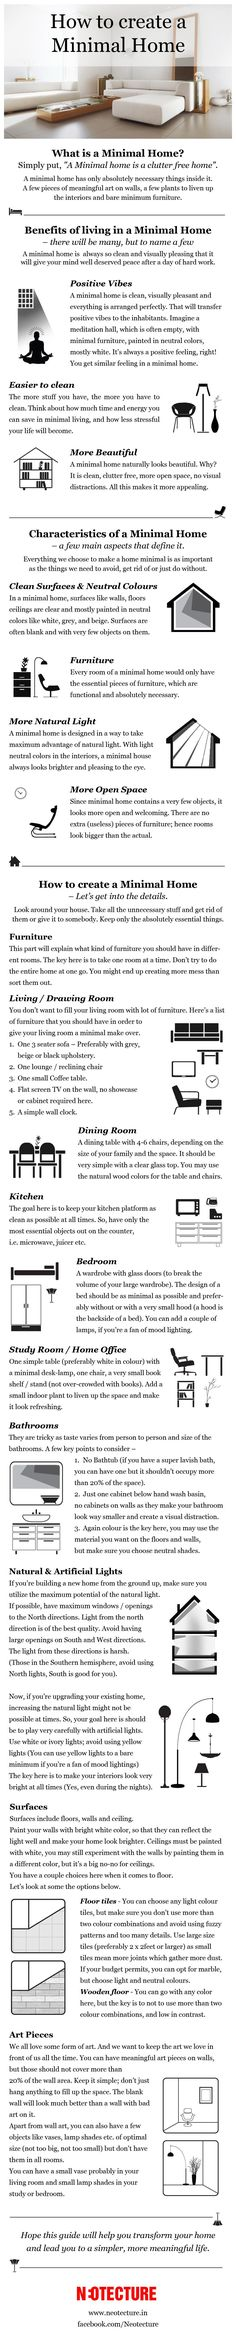 how to create a minimal home. Minimalist home decor ideas. tips for becoming a minimalist. How to become a minimalist, easy way to declutter. Minimalist Lifestyle, Minimalist Decor, Minimalist Design, Minimalist Parenting, Minimalist House, Minimalist Apartment, Minimal House Design, Modern Minimalist Bedroom, Declutter Home